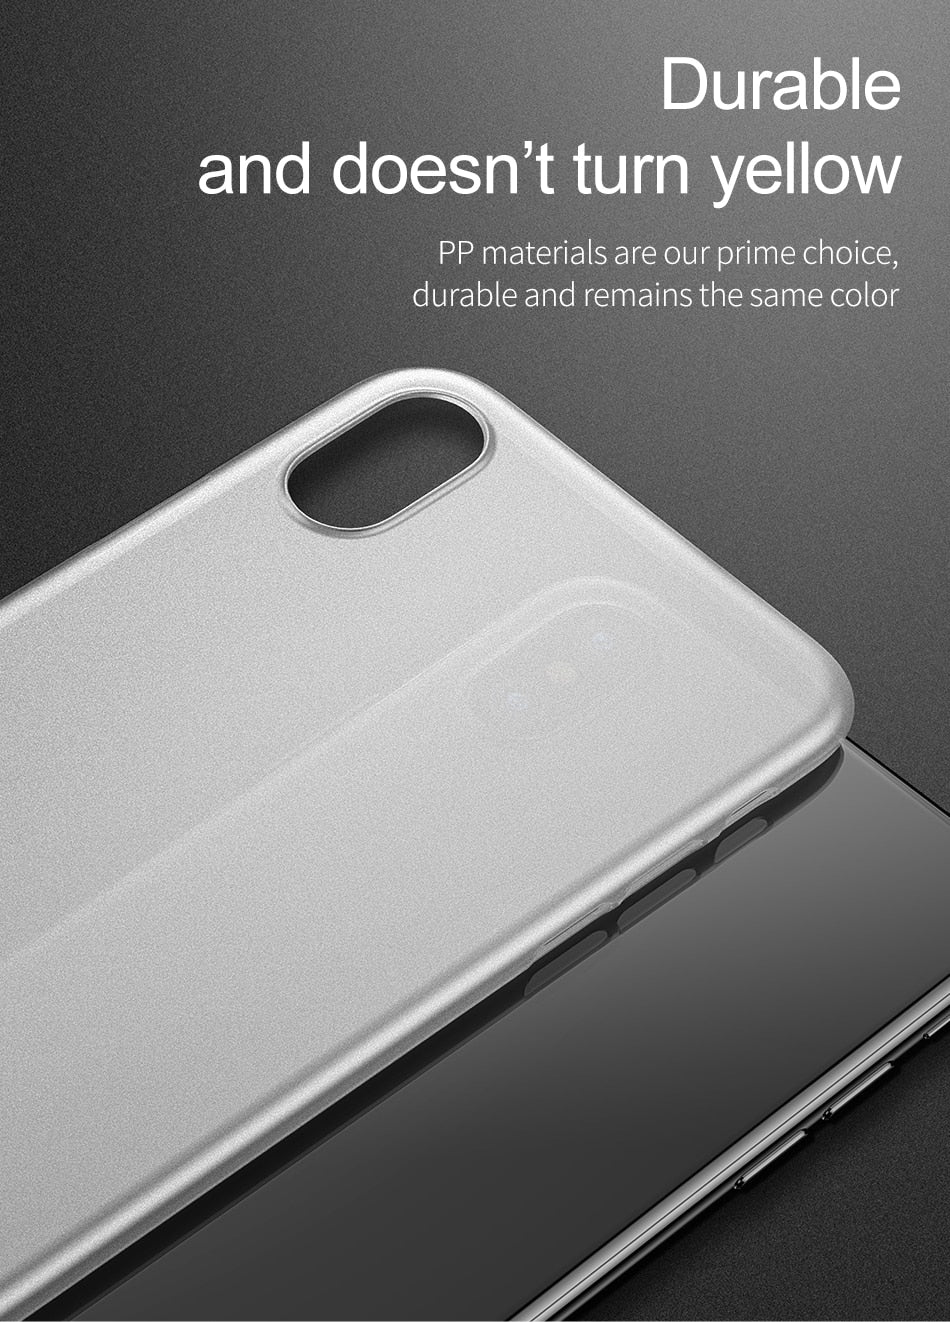 Premium Feather Light Paper Thin 0.2mm Protection Case for Apple iPhone iX/iXS